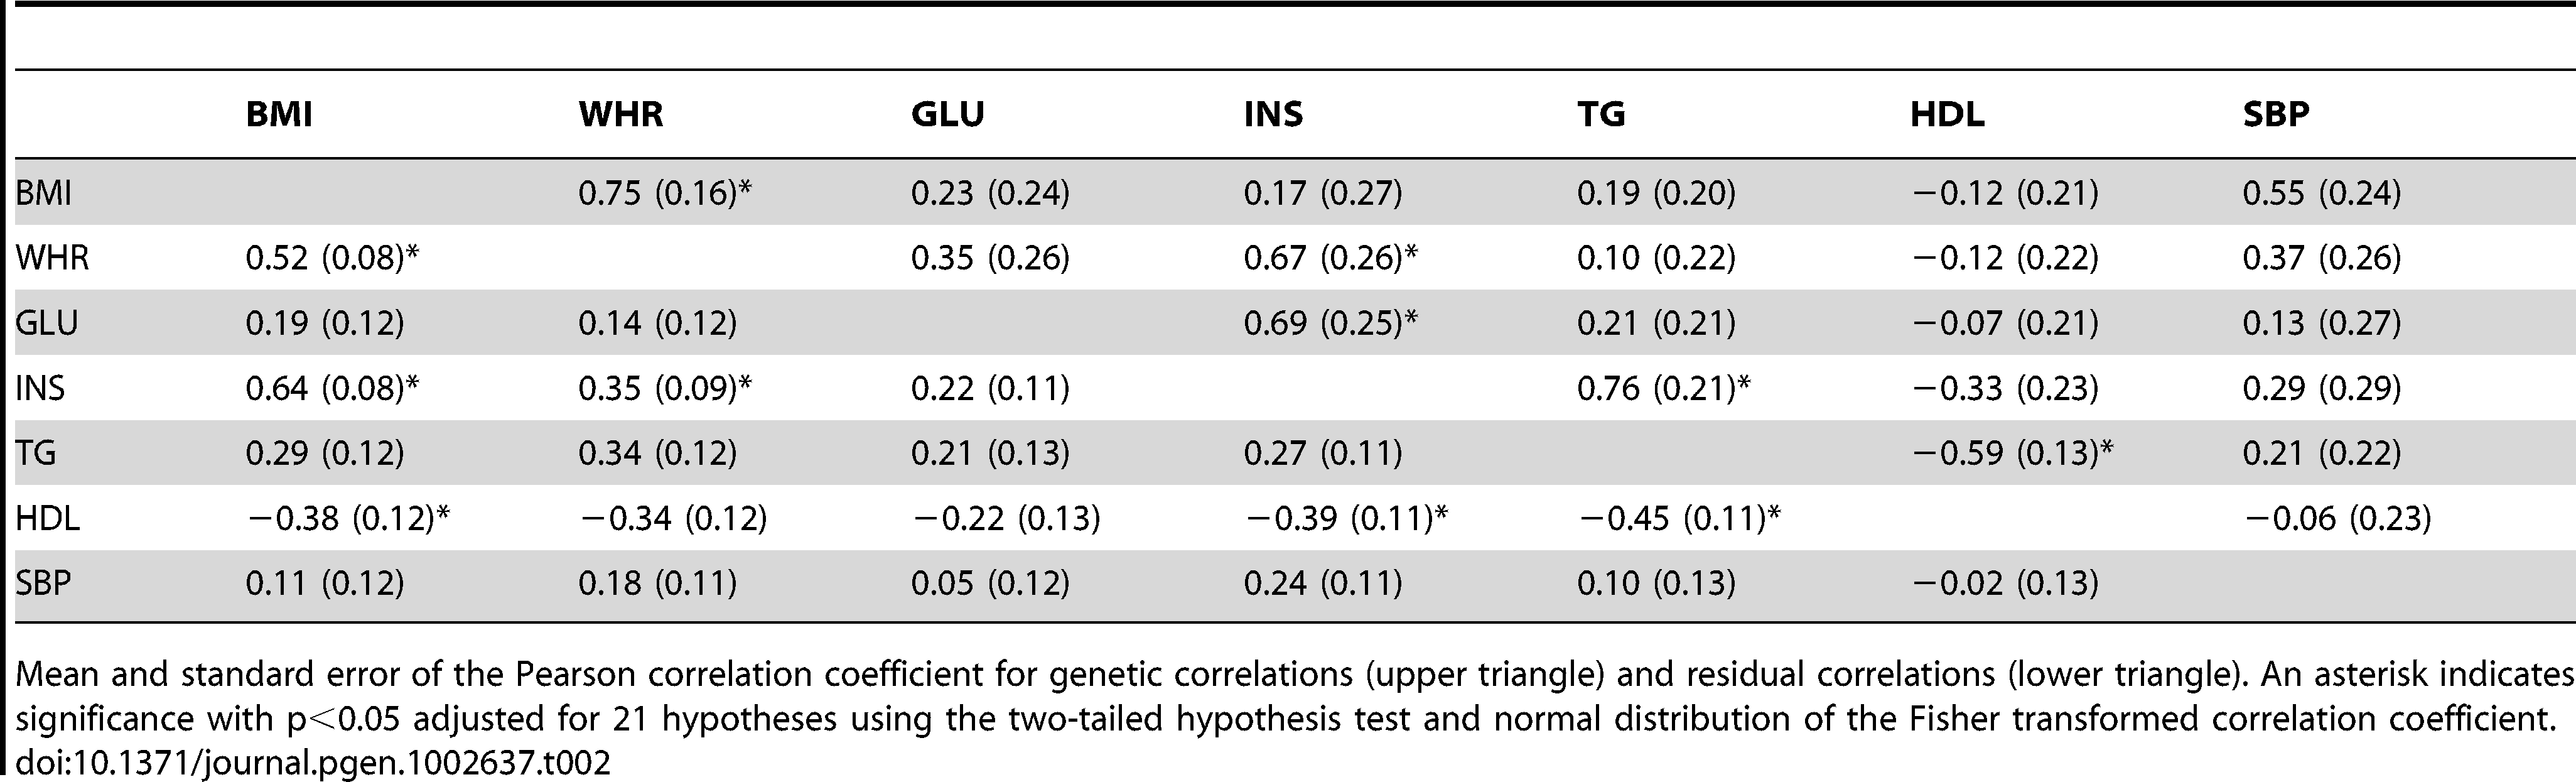 Genetic and residual correlation coefficients between MetS traits in the ARIC population among related individuals from the bivariate REML model.